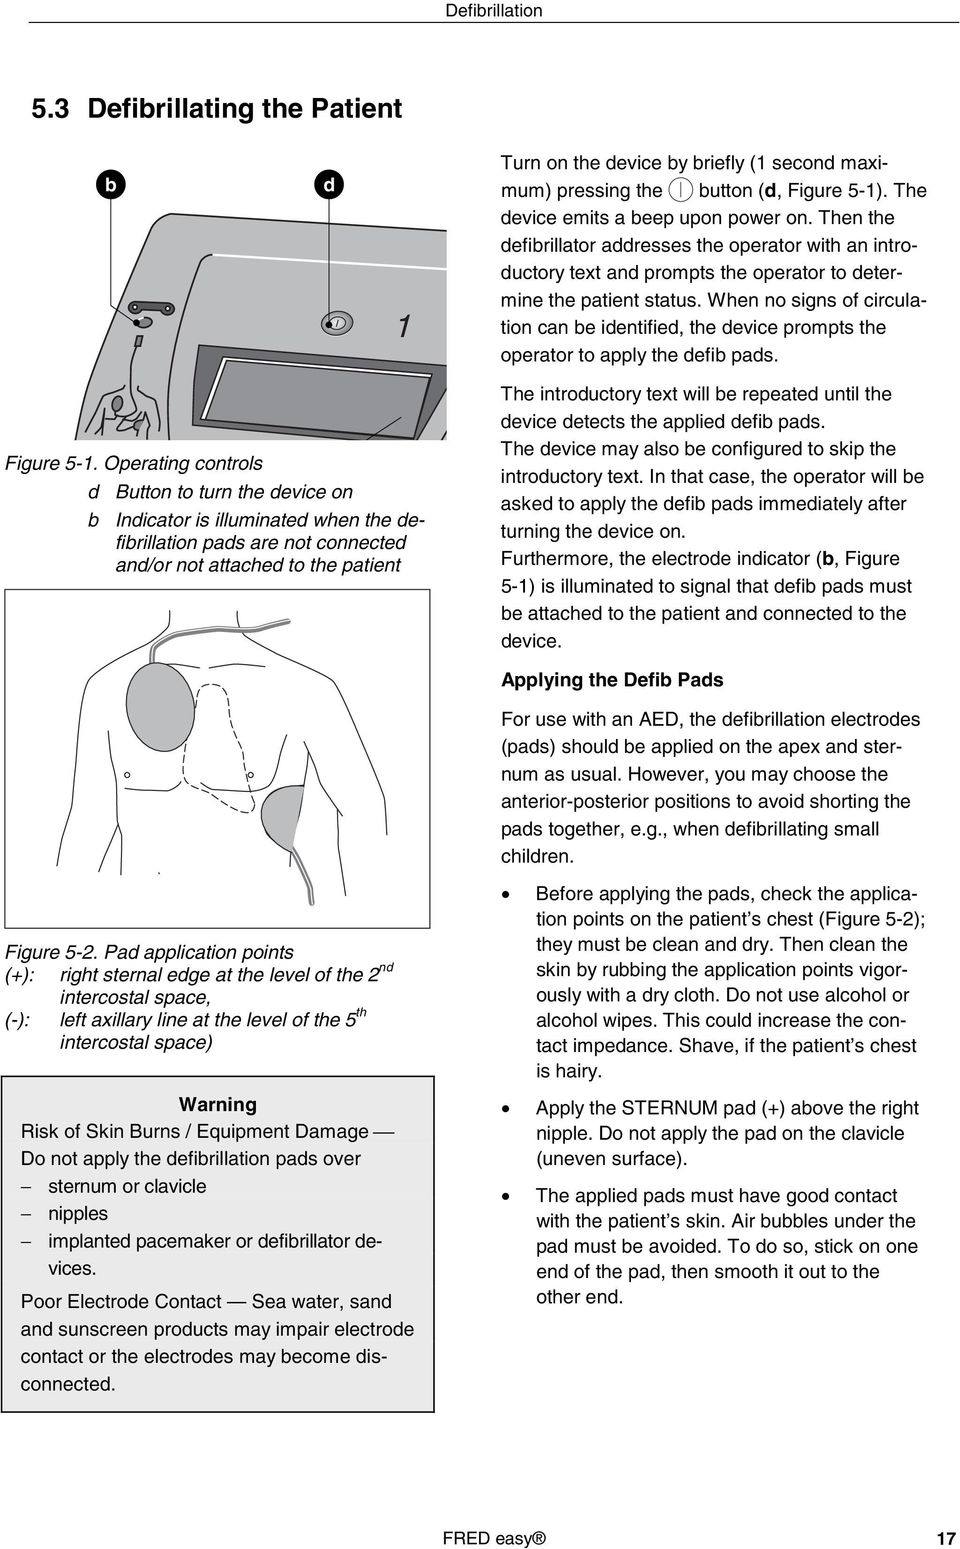 When no signs of circulation can be identified, the device prompts the operator to apply the defib pads. Figure 5-1.